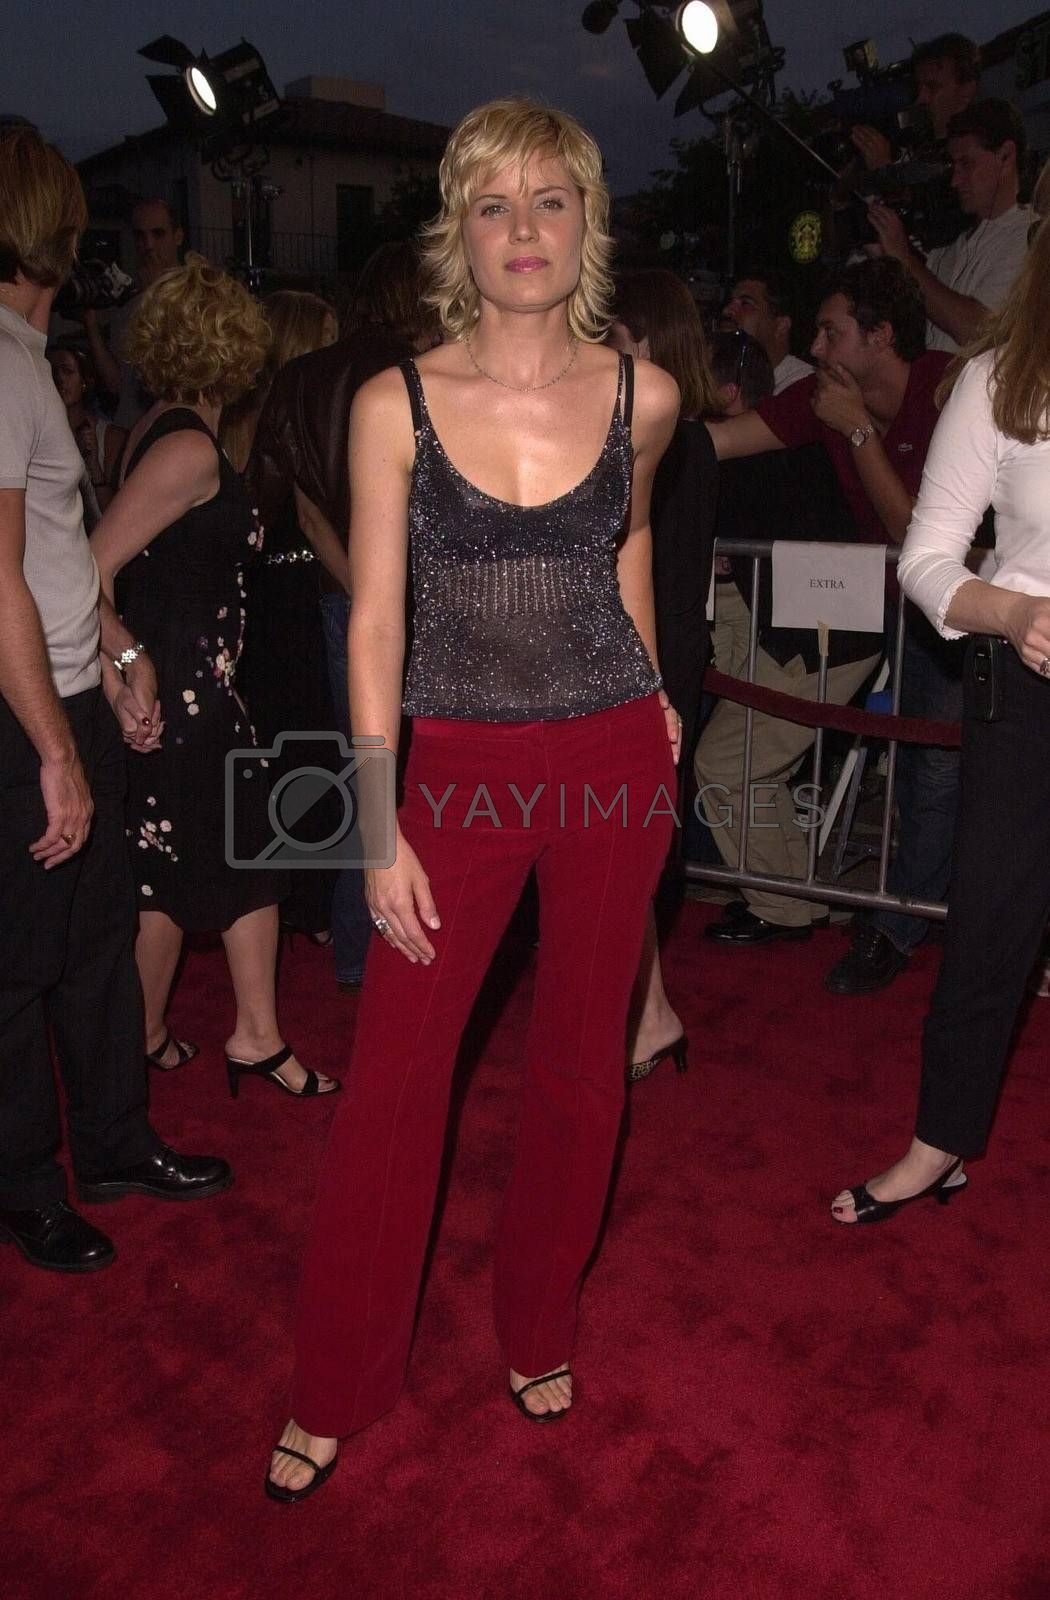 Kim Dickens at the premiere of Hollow Man in Westwood. 08-02-00